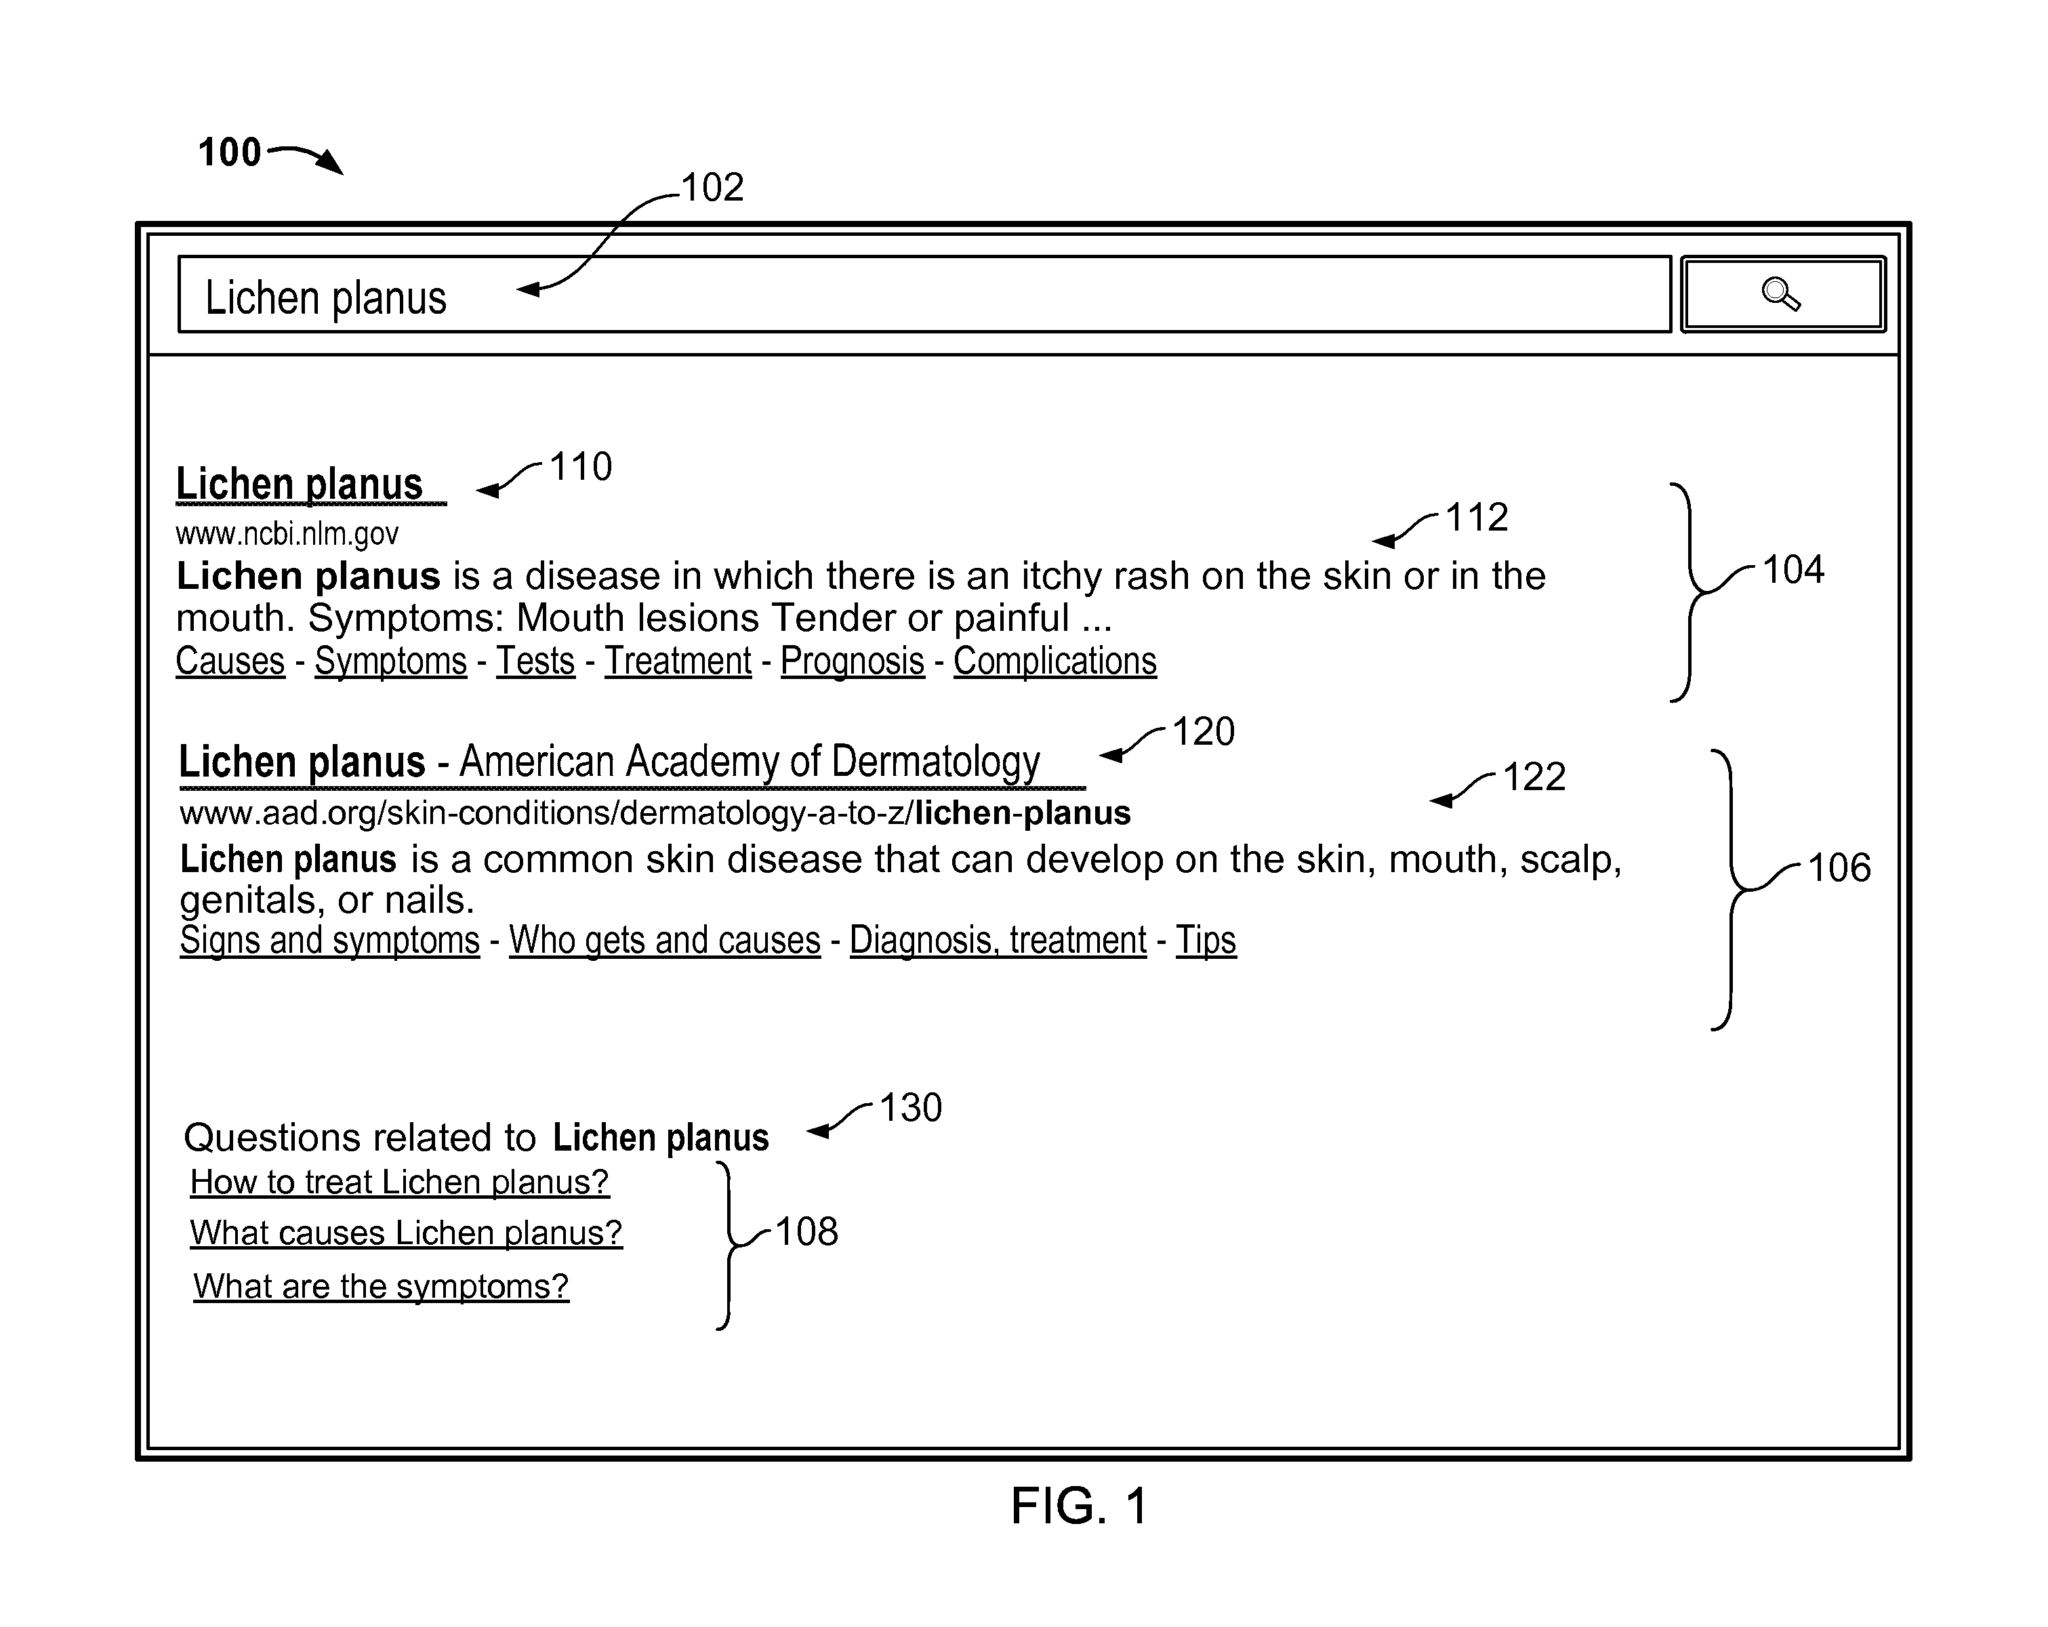 Google patent on generating related questions for search queries